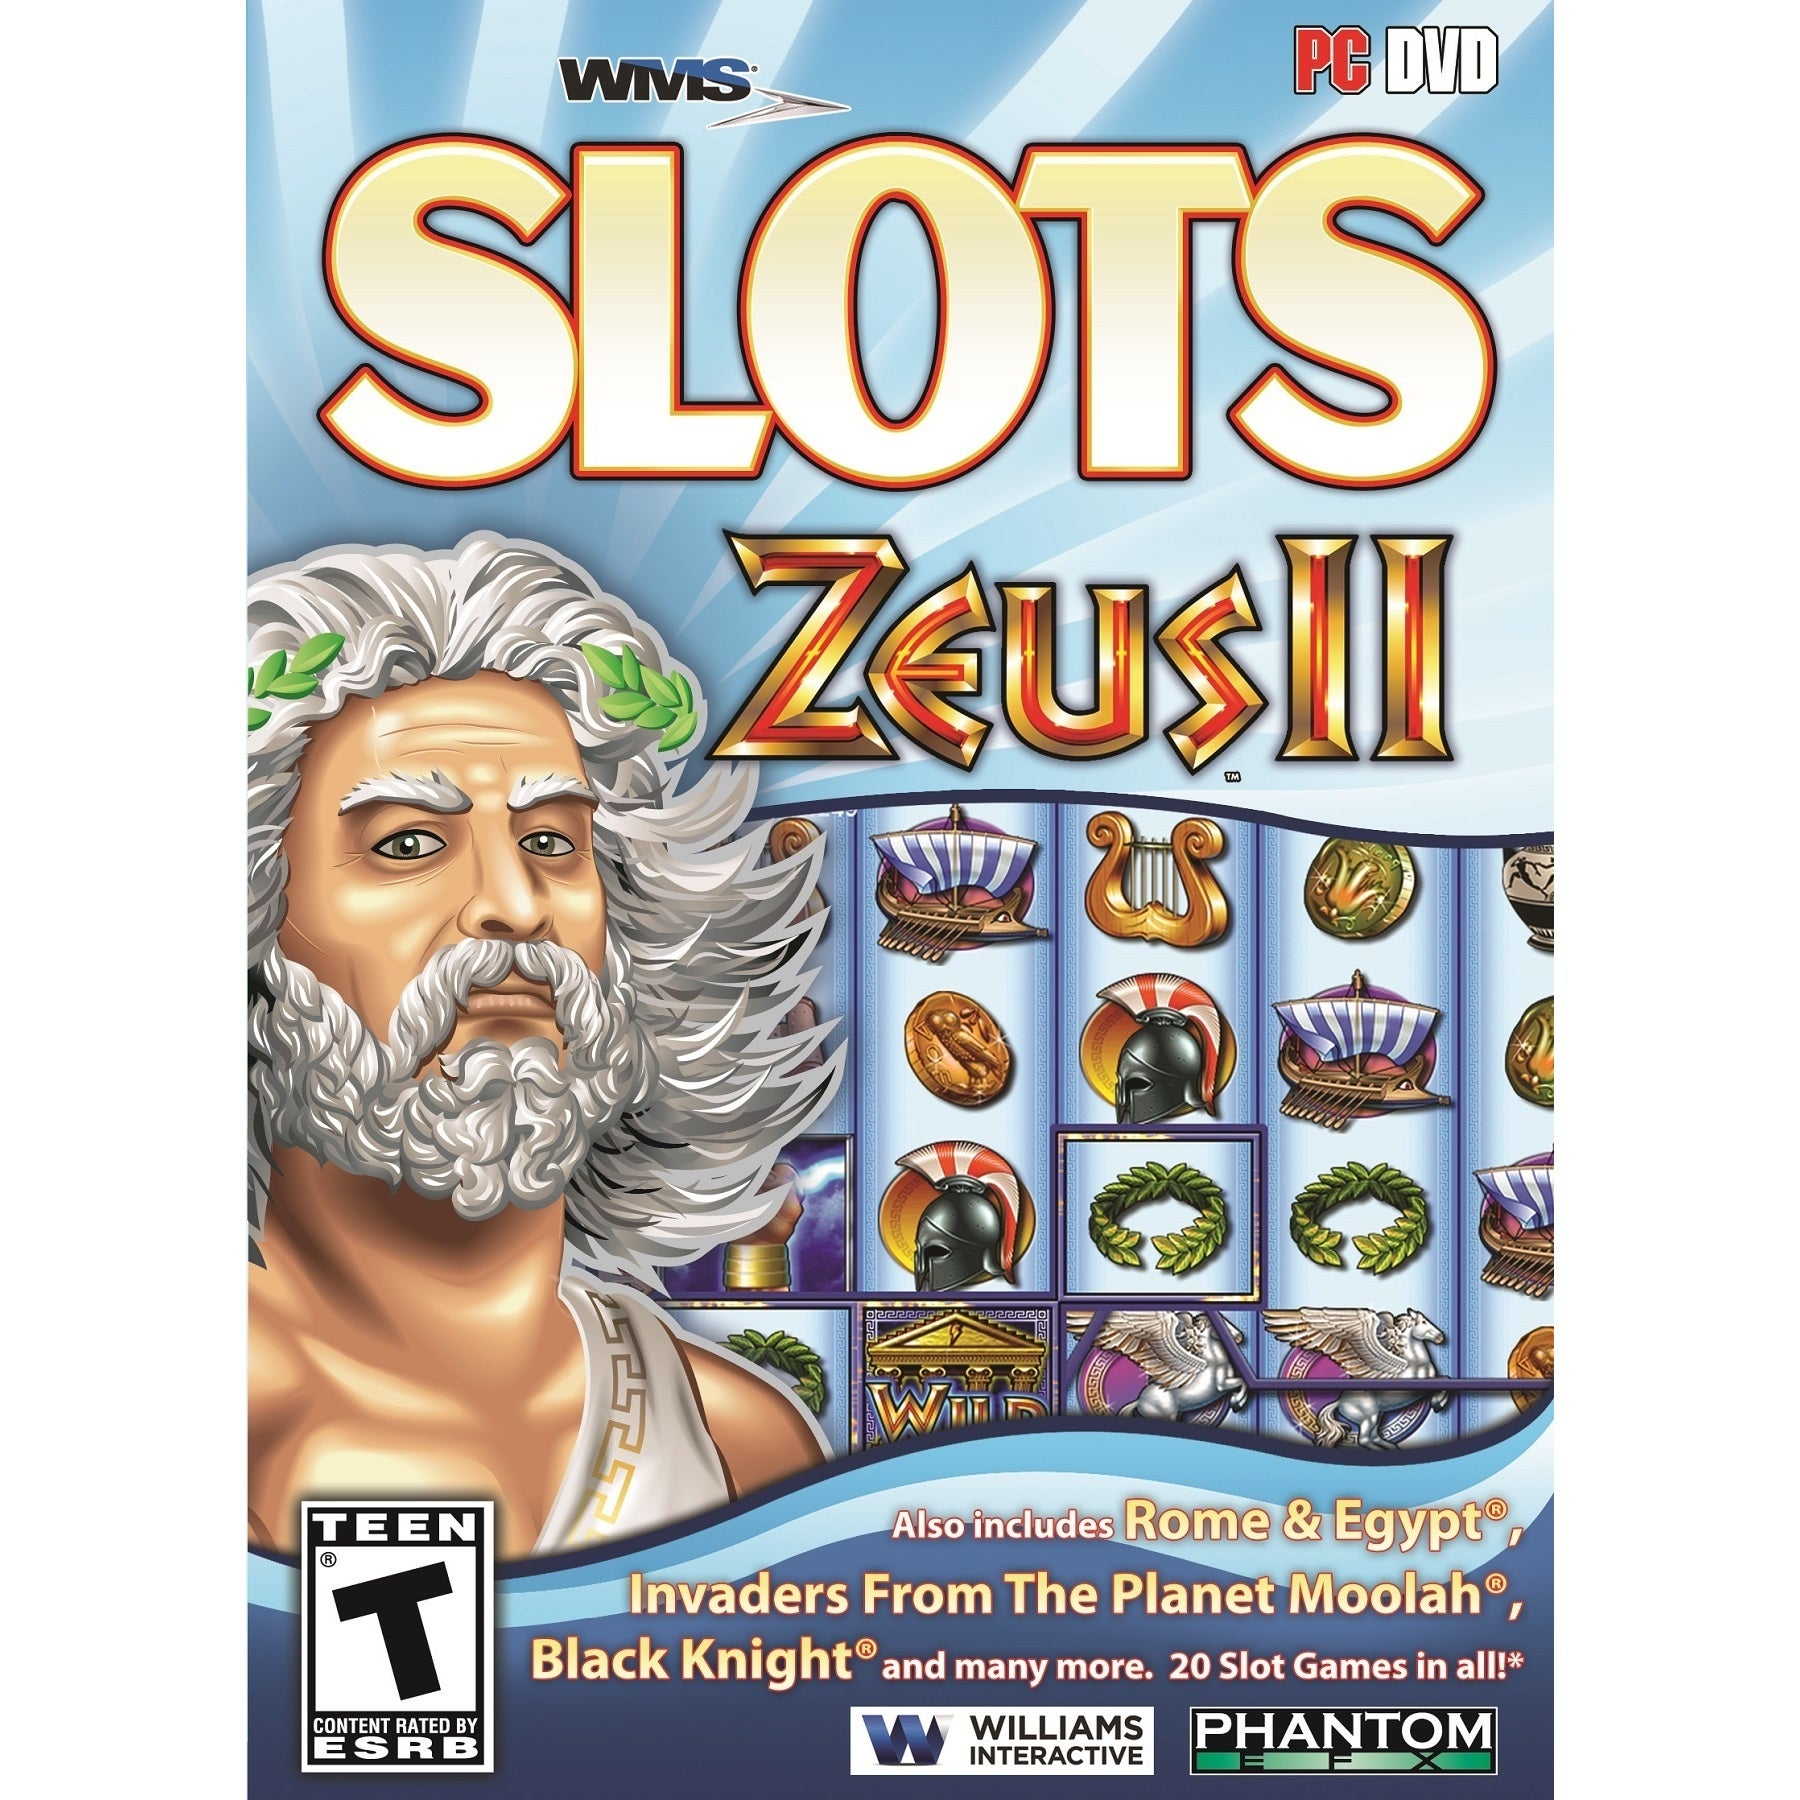 Casino Slot Games On Dvd